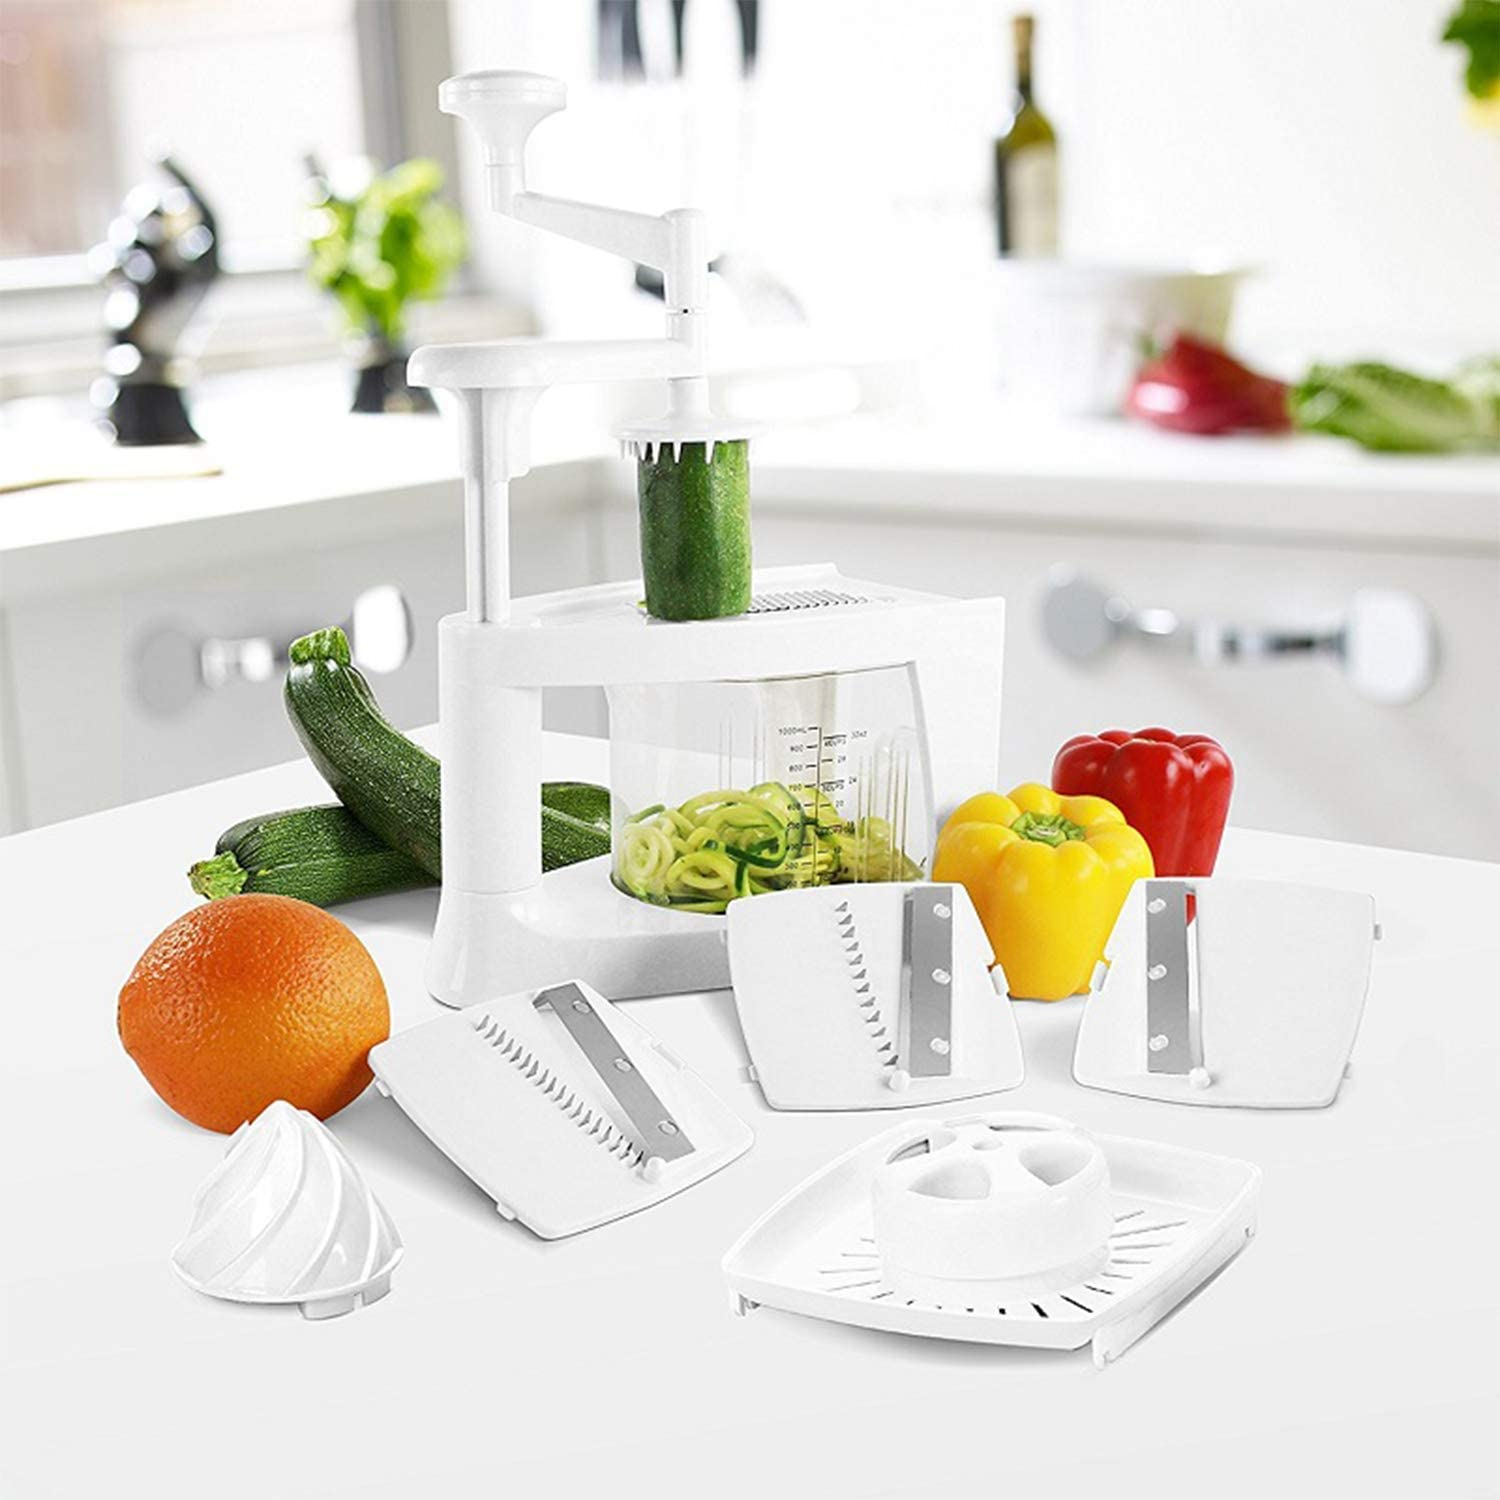 Evospire 8 in 1 Spiralizer Kitchen Evolved Package, Low Carb diet? Need to Make Vegan or Vegetarian food? No Problem! Eat Healthier Food Today in Seconds!